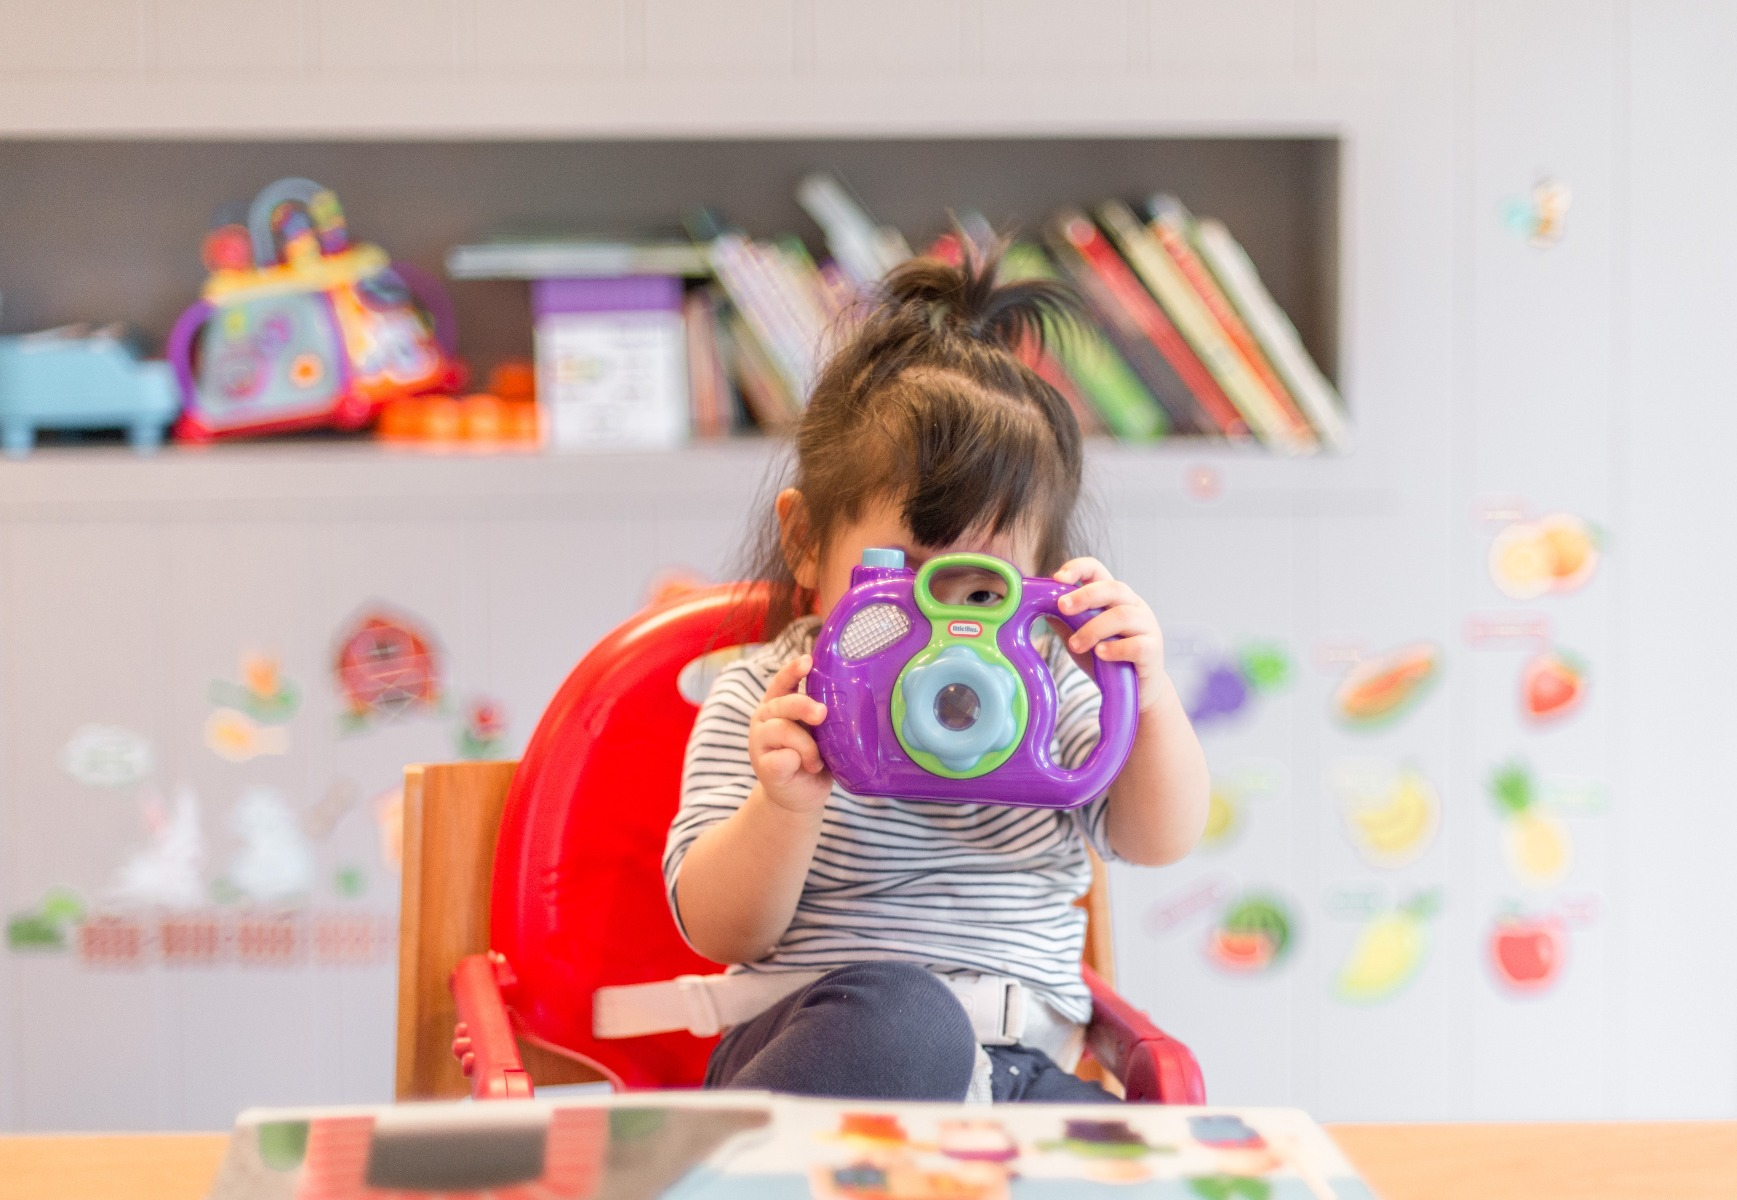 Little girl looks through toy camera lens while reading a picture book and sitting at a table in her homeschool classroom.